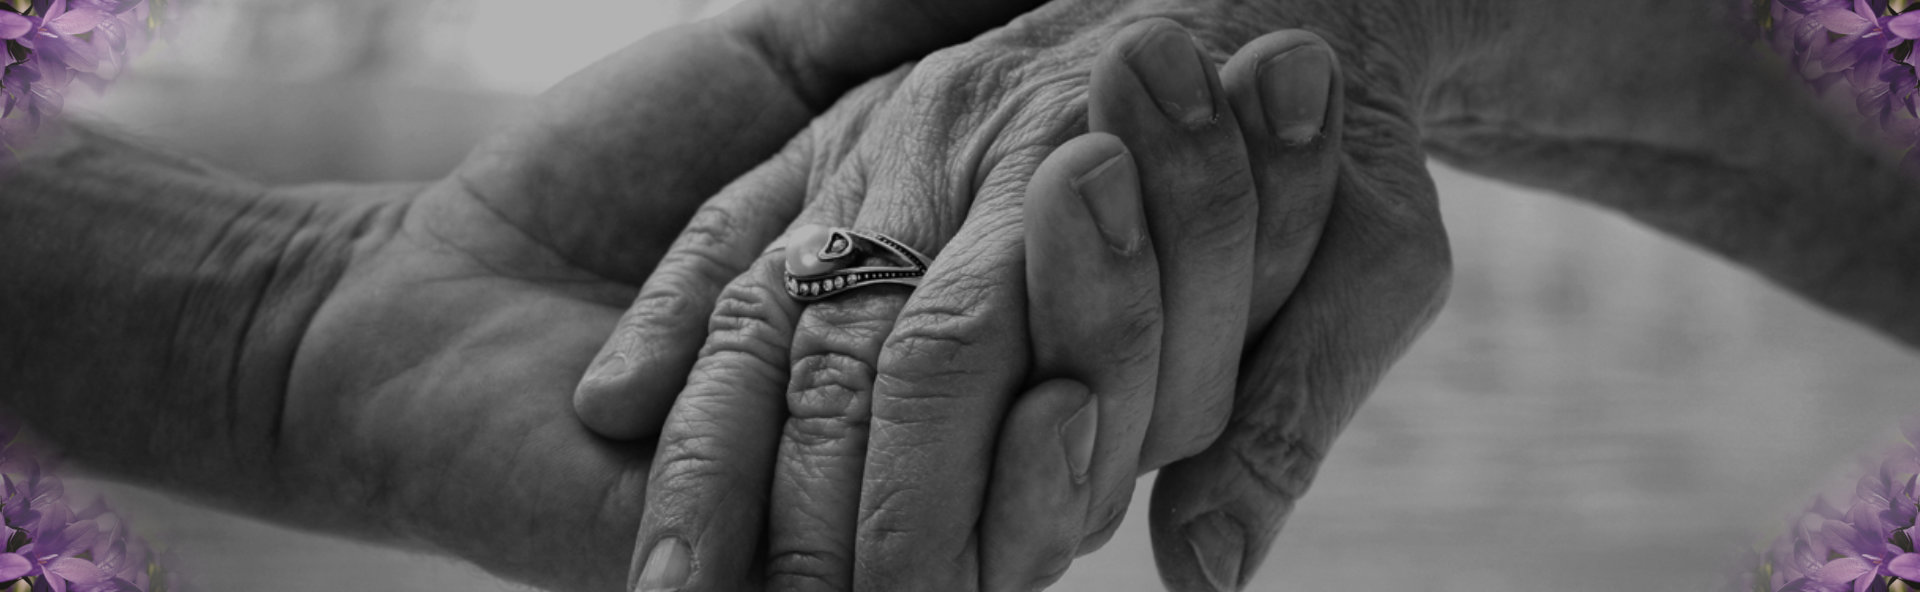 elderly holding each other's hands